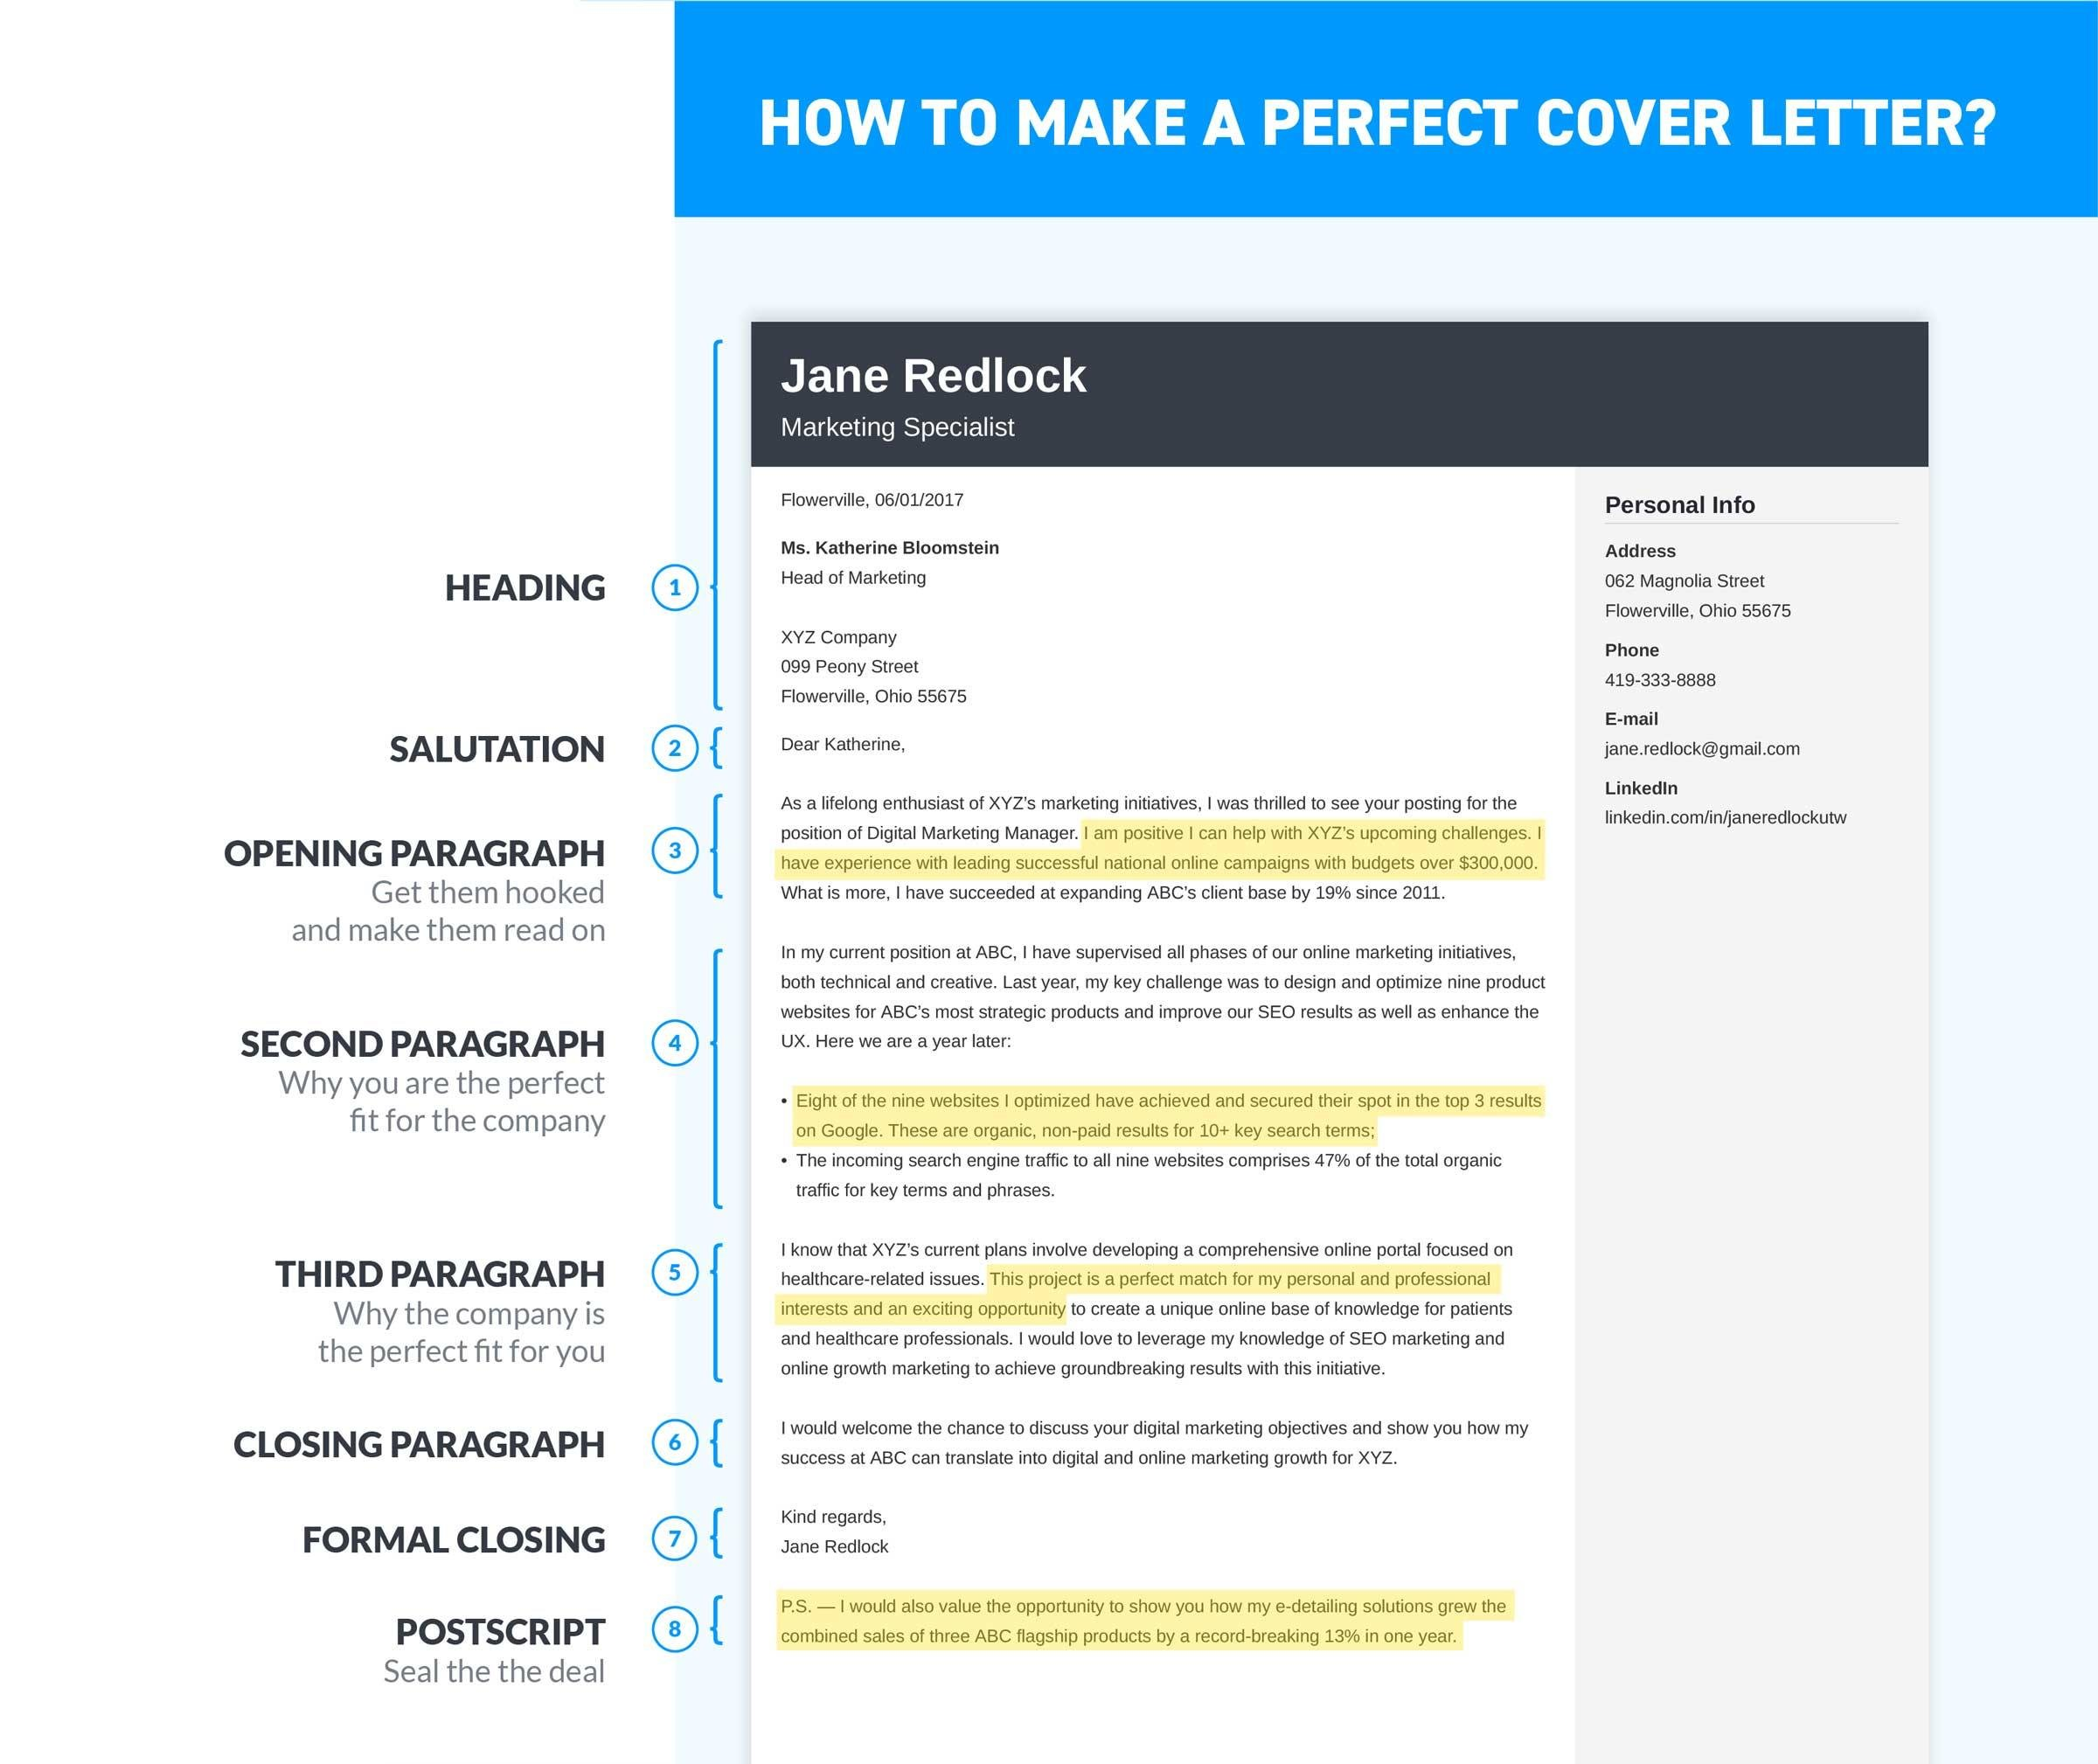 How To Prepare A Cover Letter For A Resume How To Write A Cover Letter In 8 Simple Steps 12 Examples